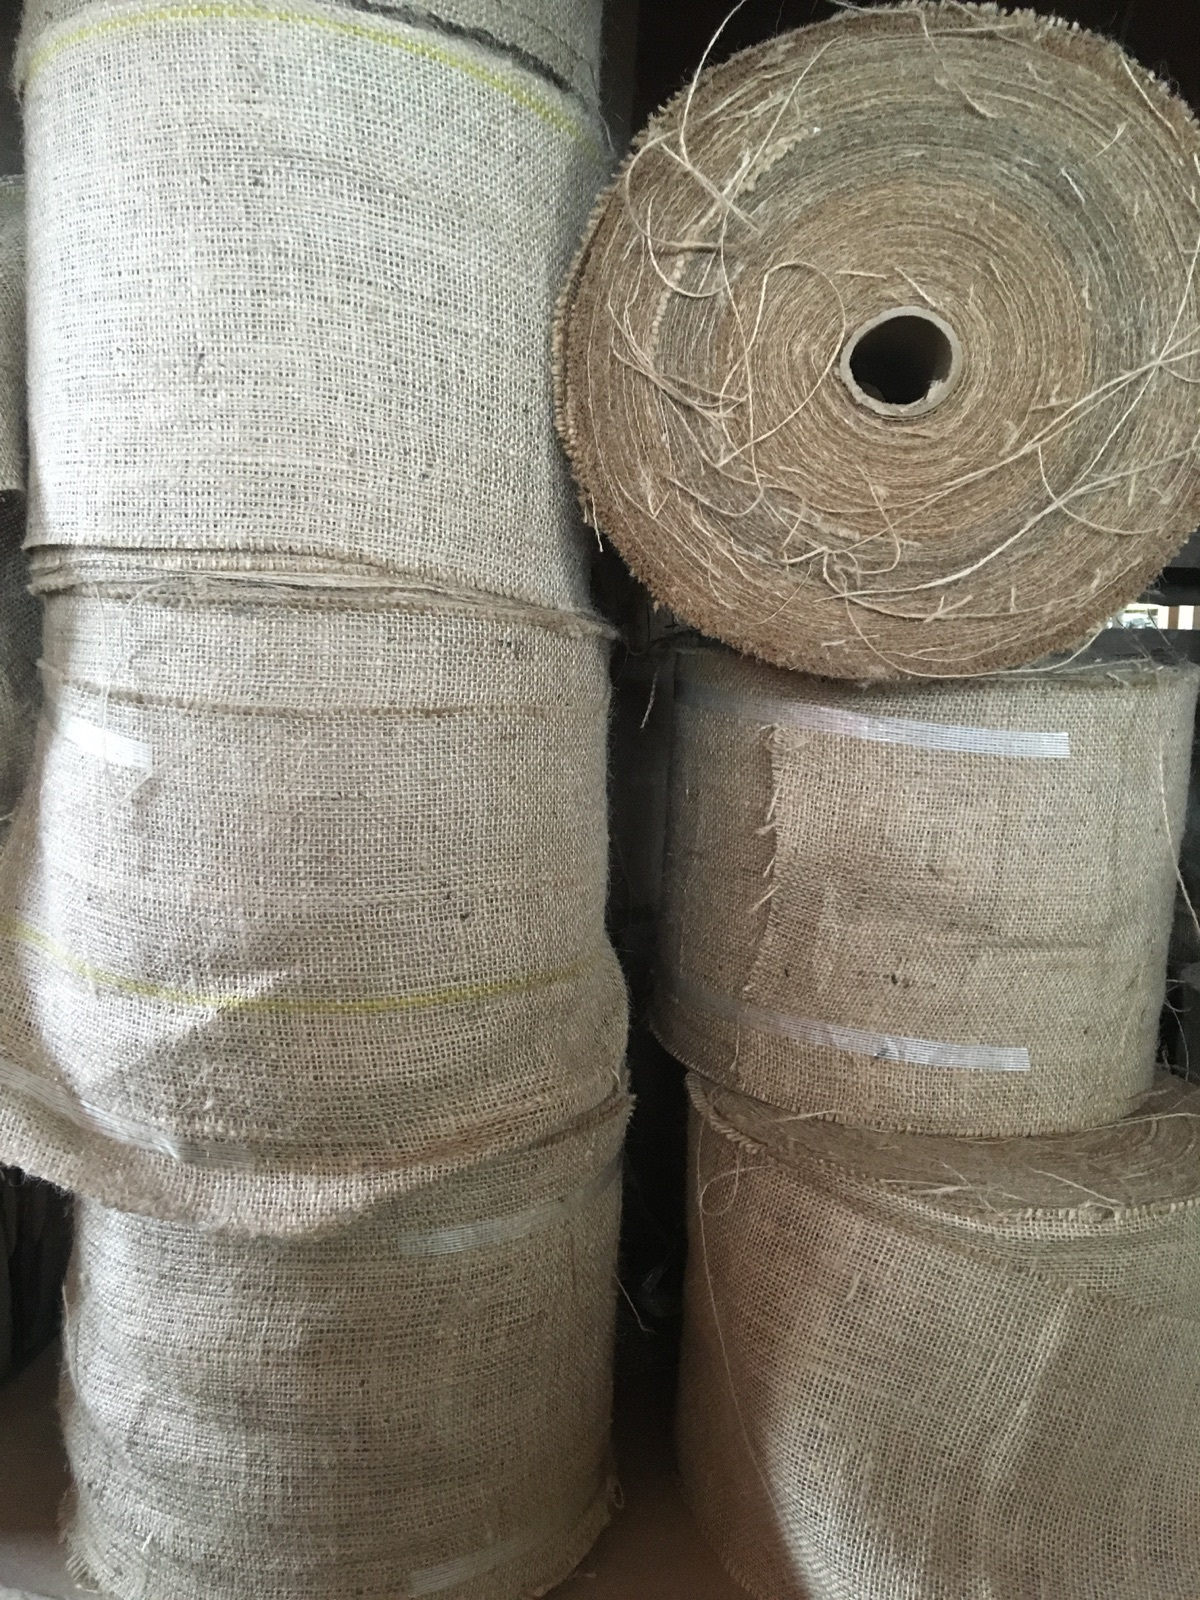 7 inch wide burlap roll - 100 Yards (possibly colored stripe)